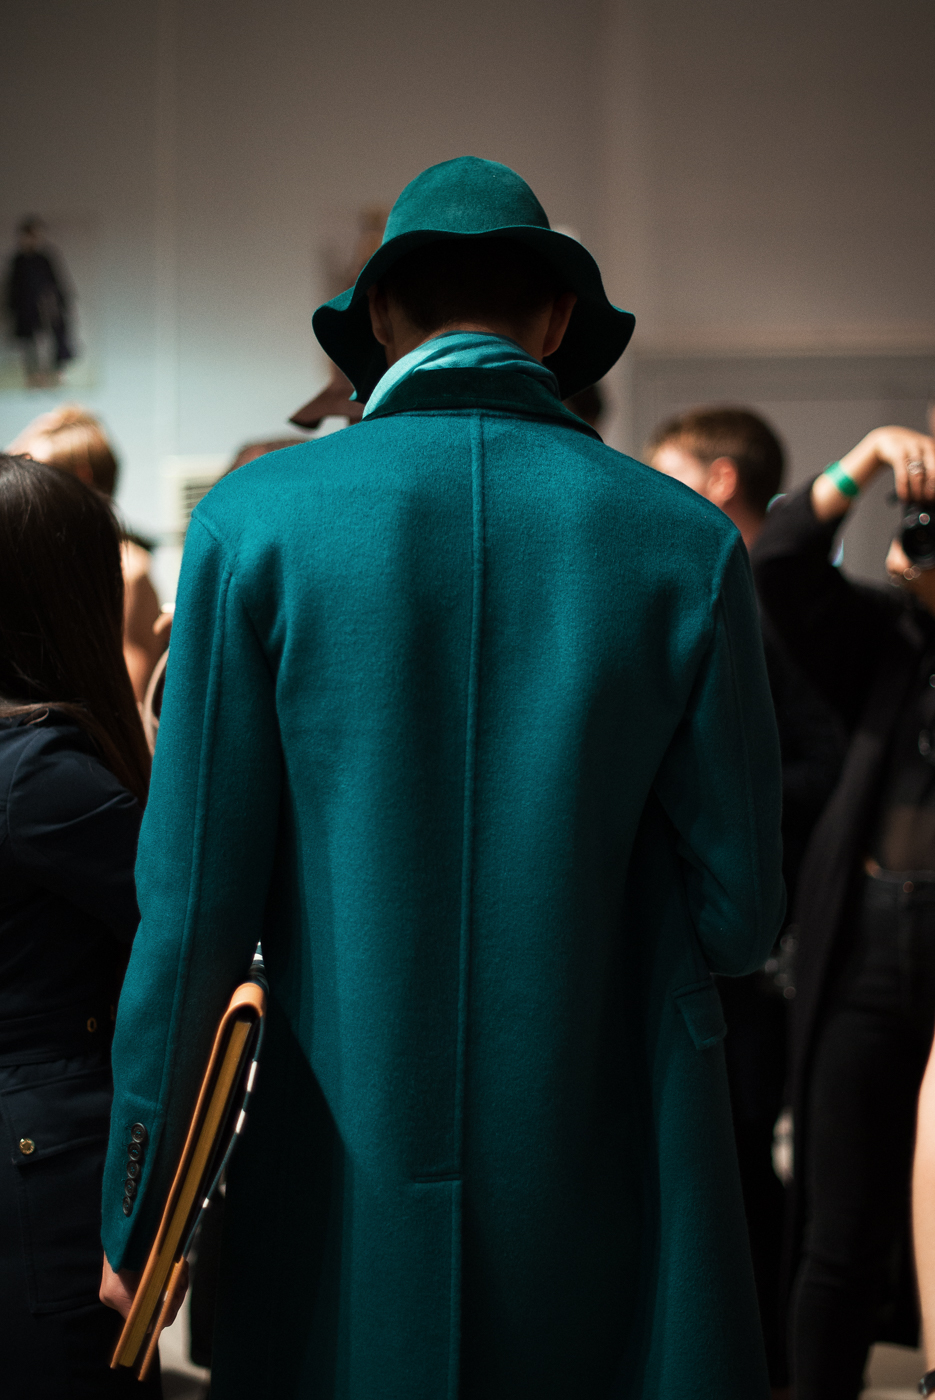 Backstage at  Burberry Prorsum  LC:M.